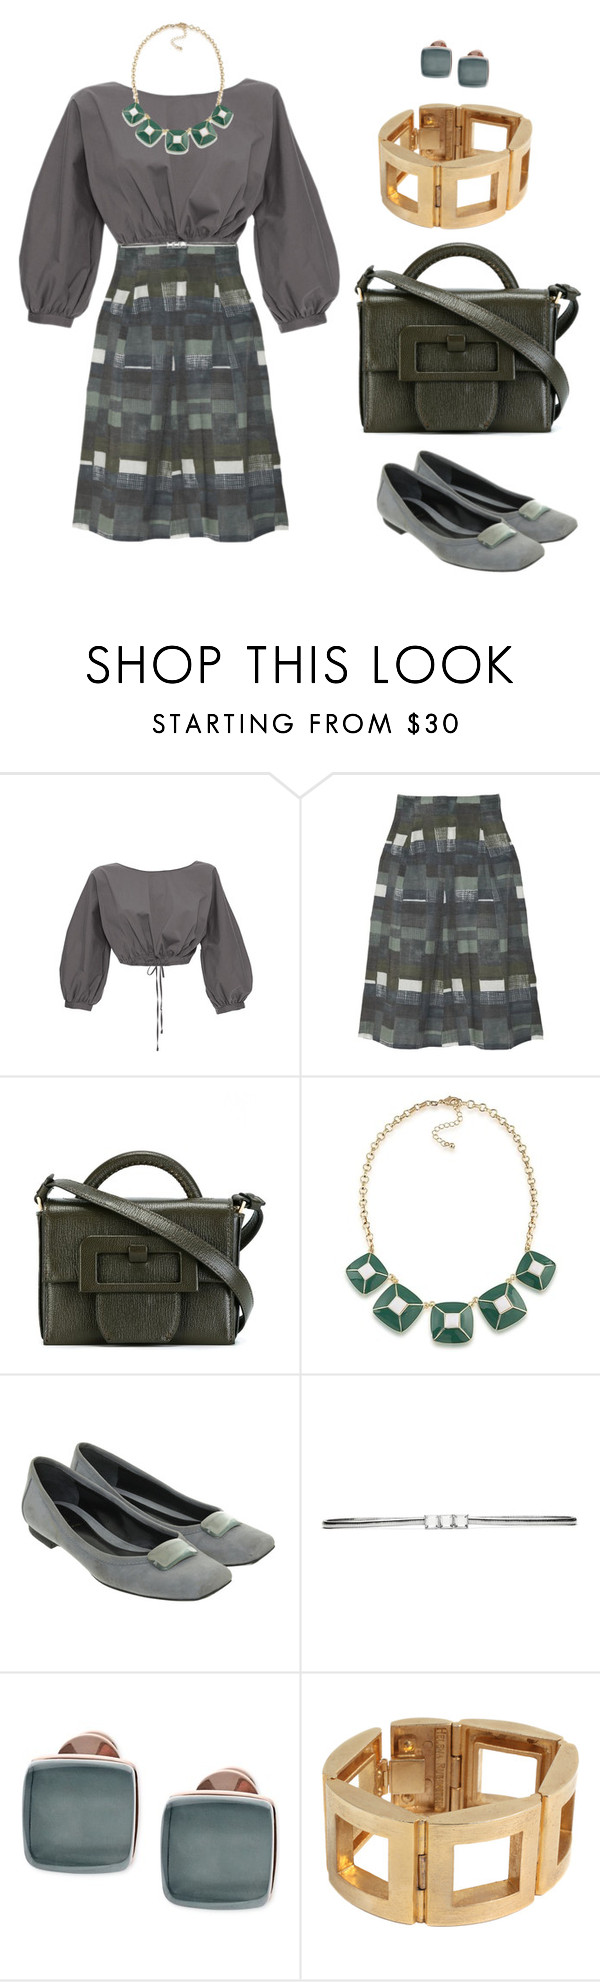 """life is full of color!"" by fashuhnn ❤ liked on Polyvore featuring Blumarine, Marni, Maison Margiela, Fendi, Vince Camuto, Skagen and Helena Rubenstein"